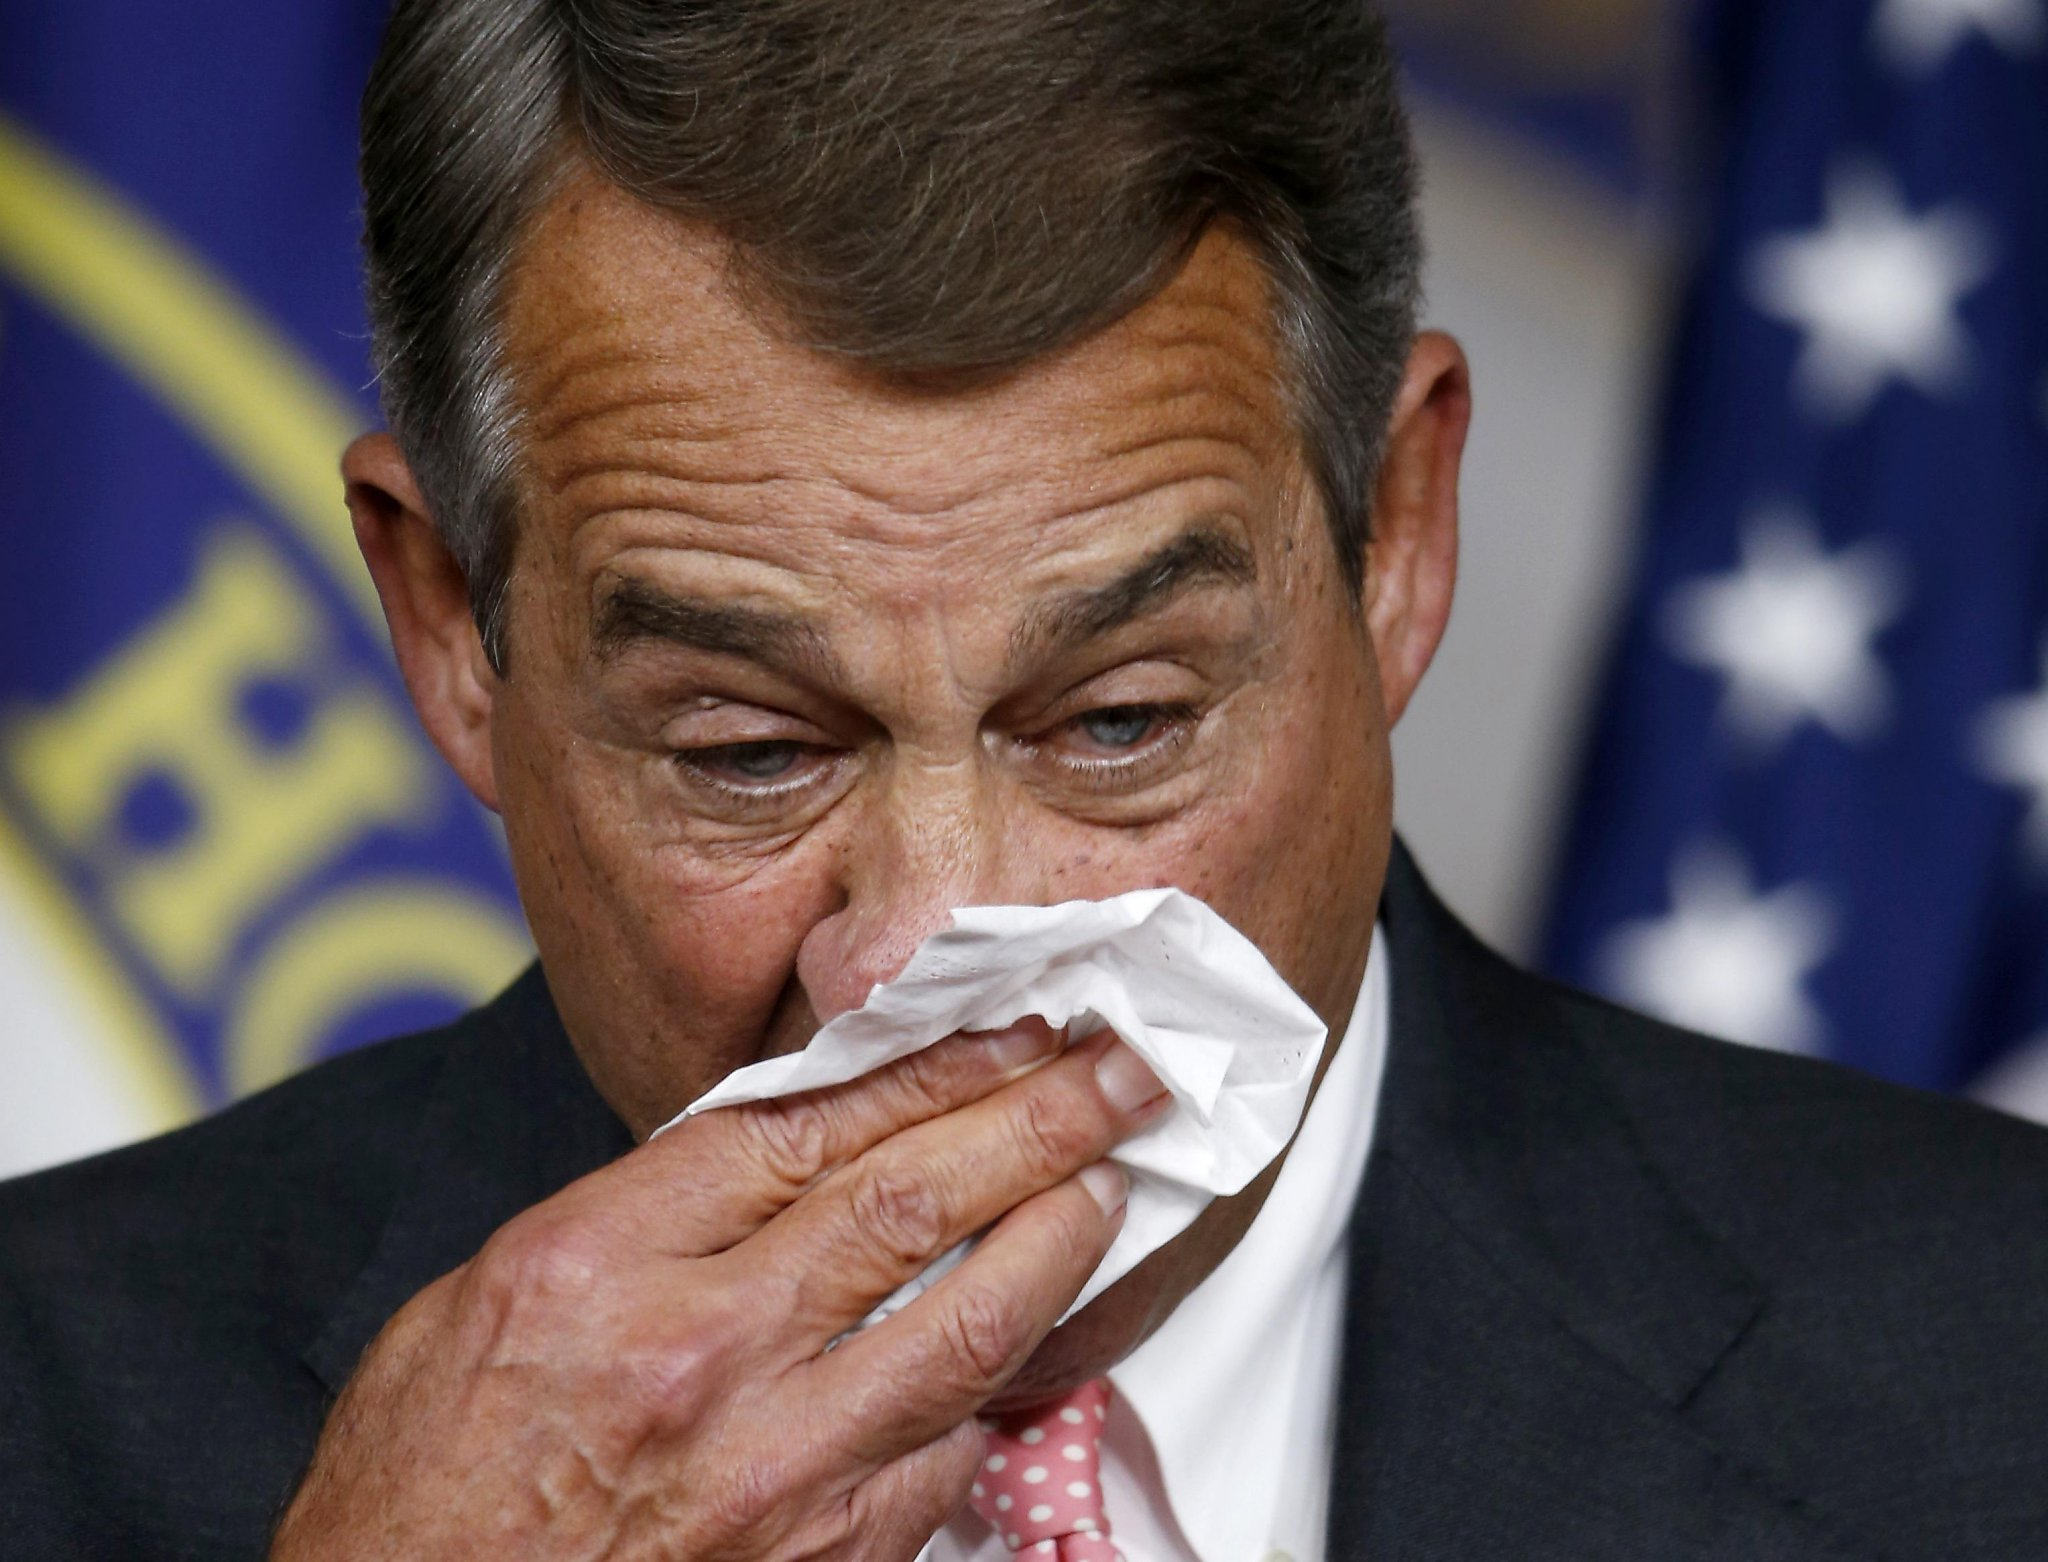 Boehner rose from modest Ohio means to lofty Washington